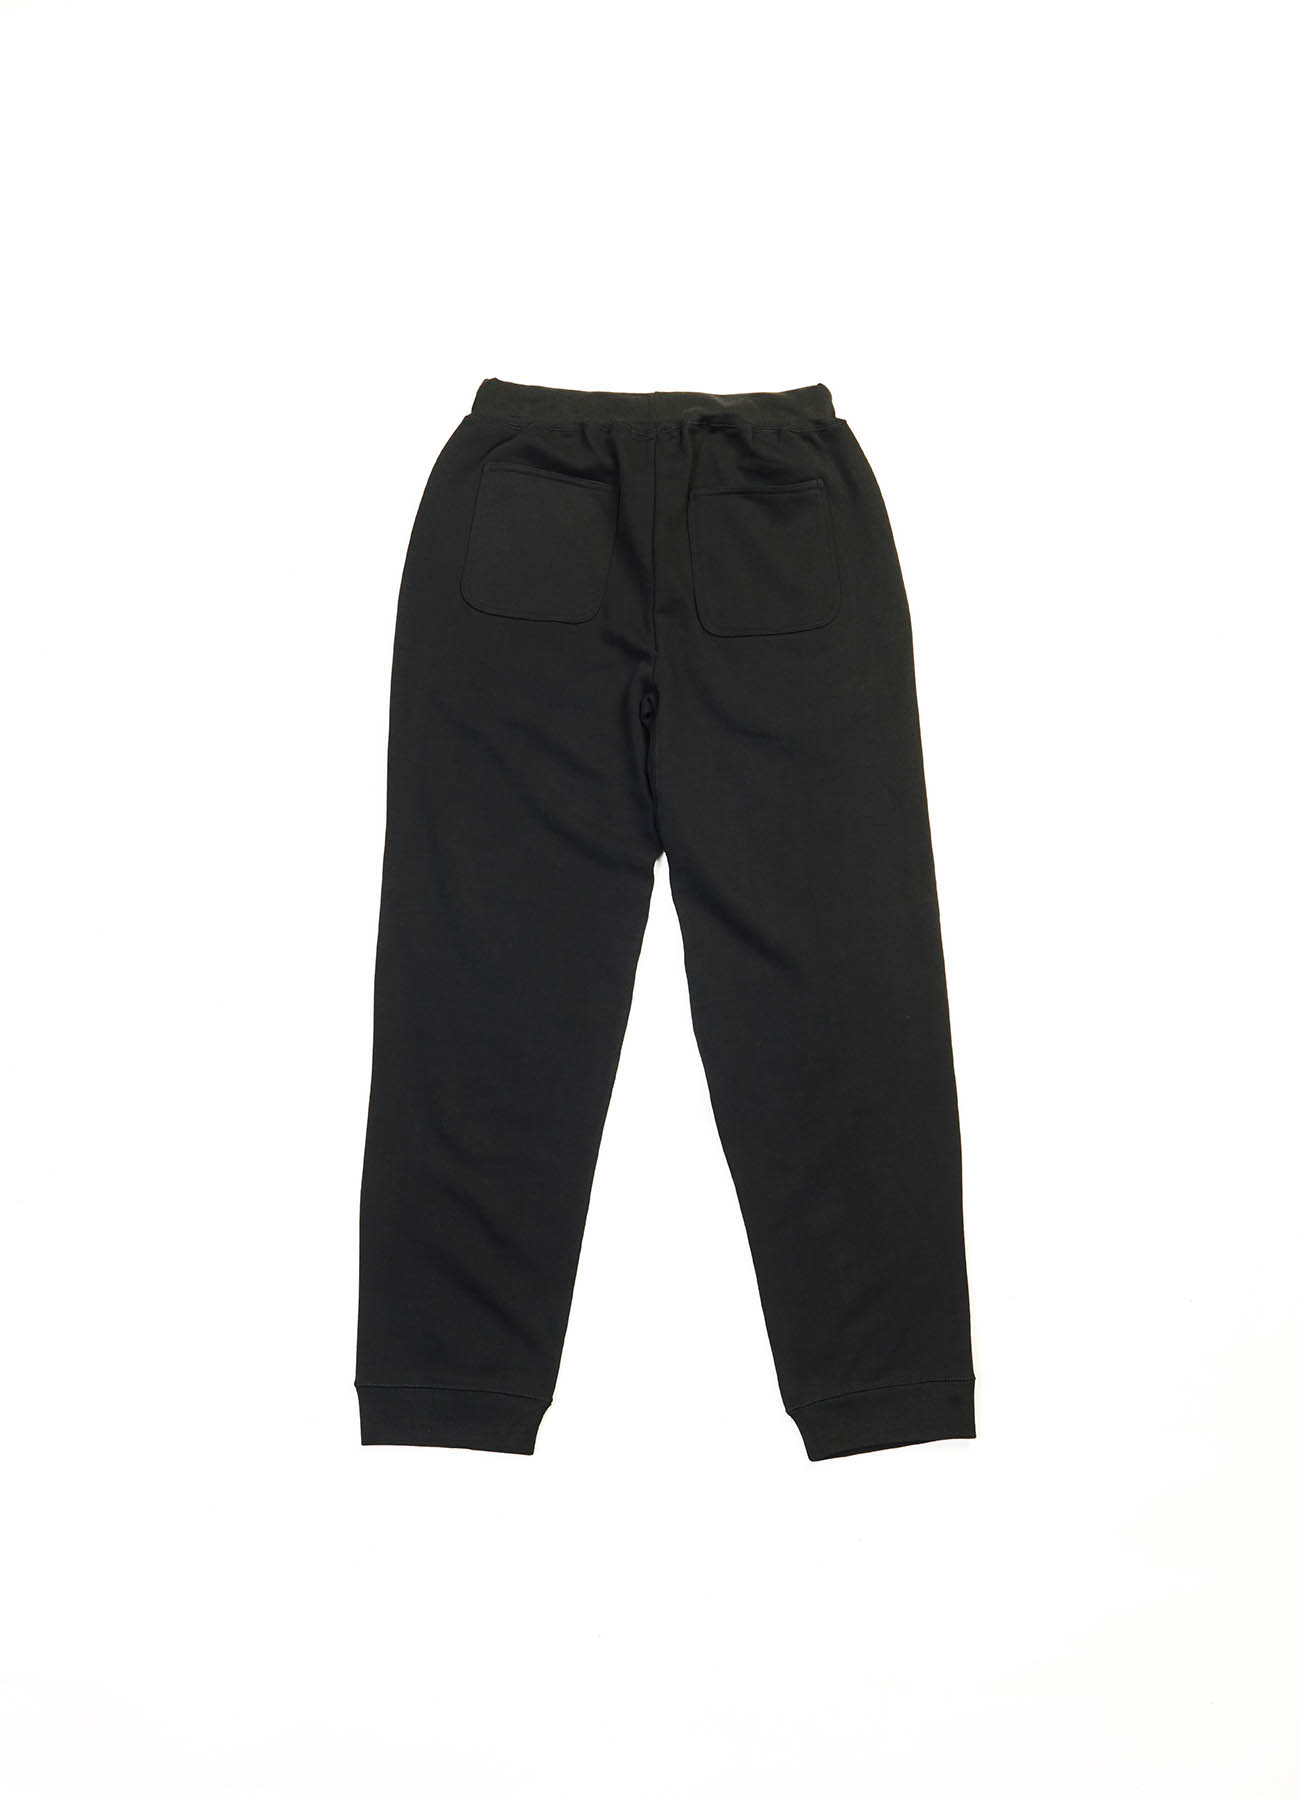 THE SHOP Limited product Y's logo Sweat Pants